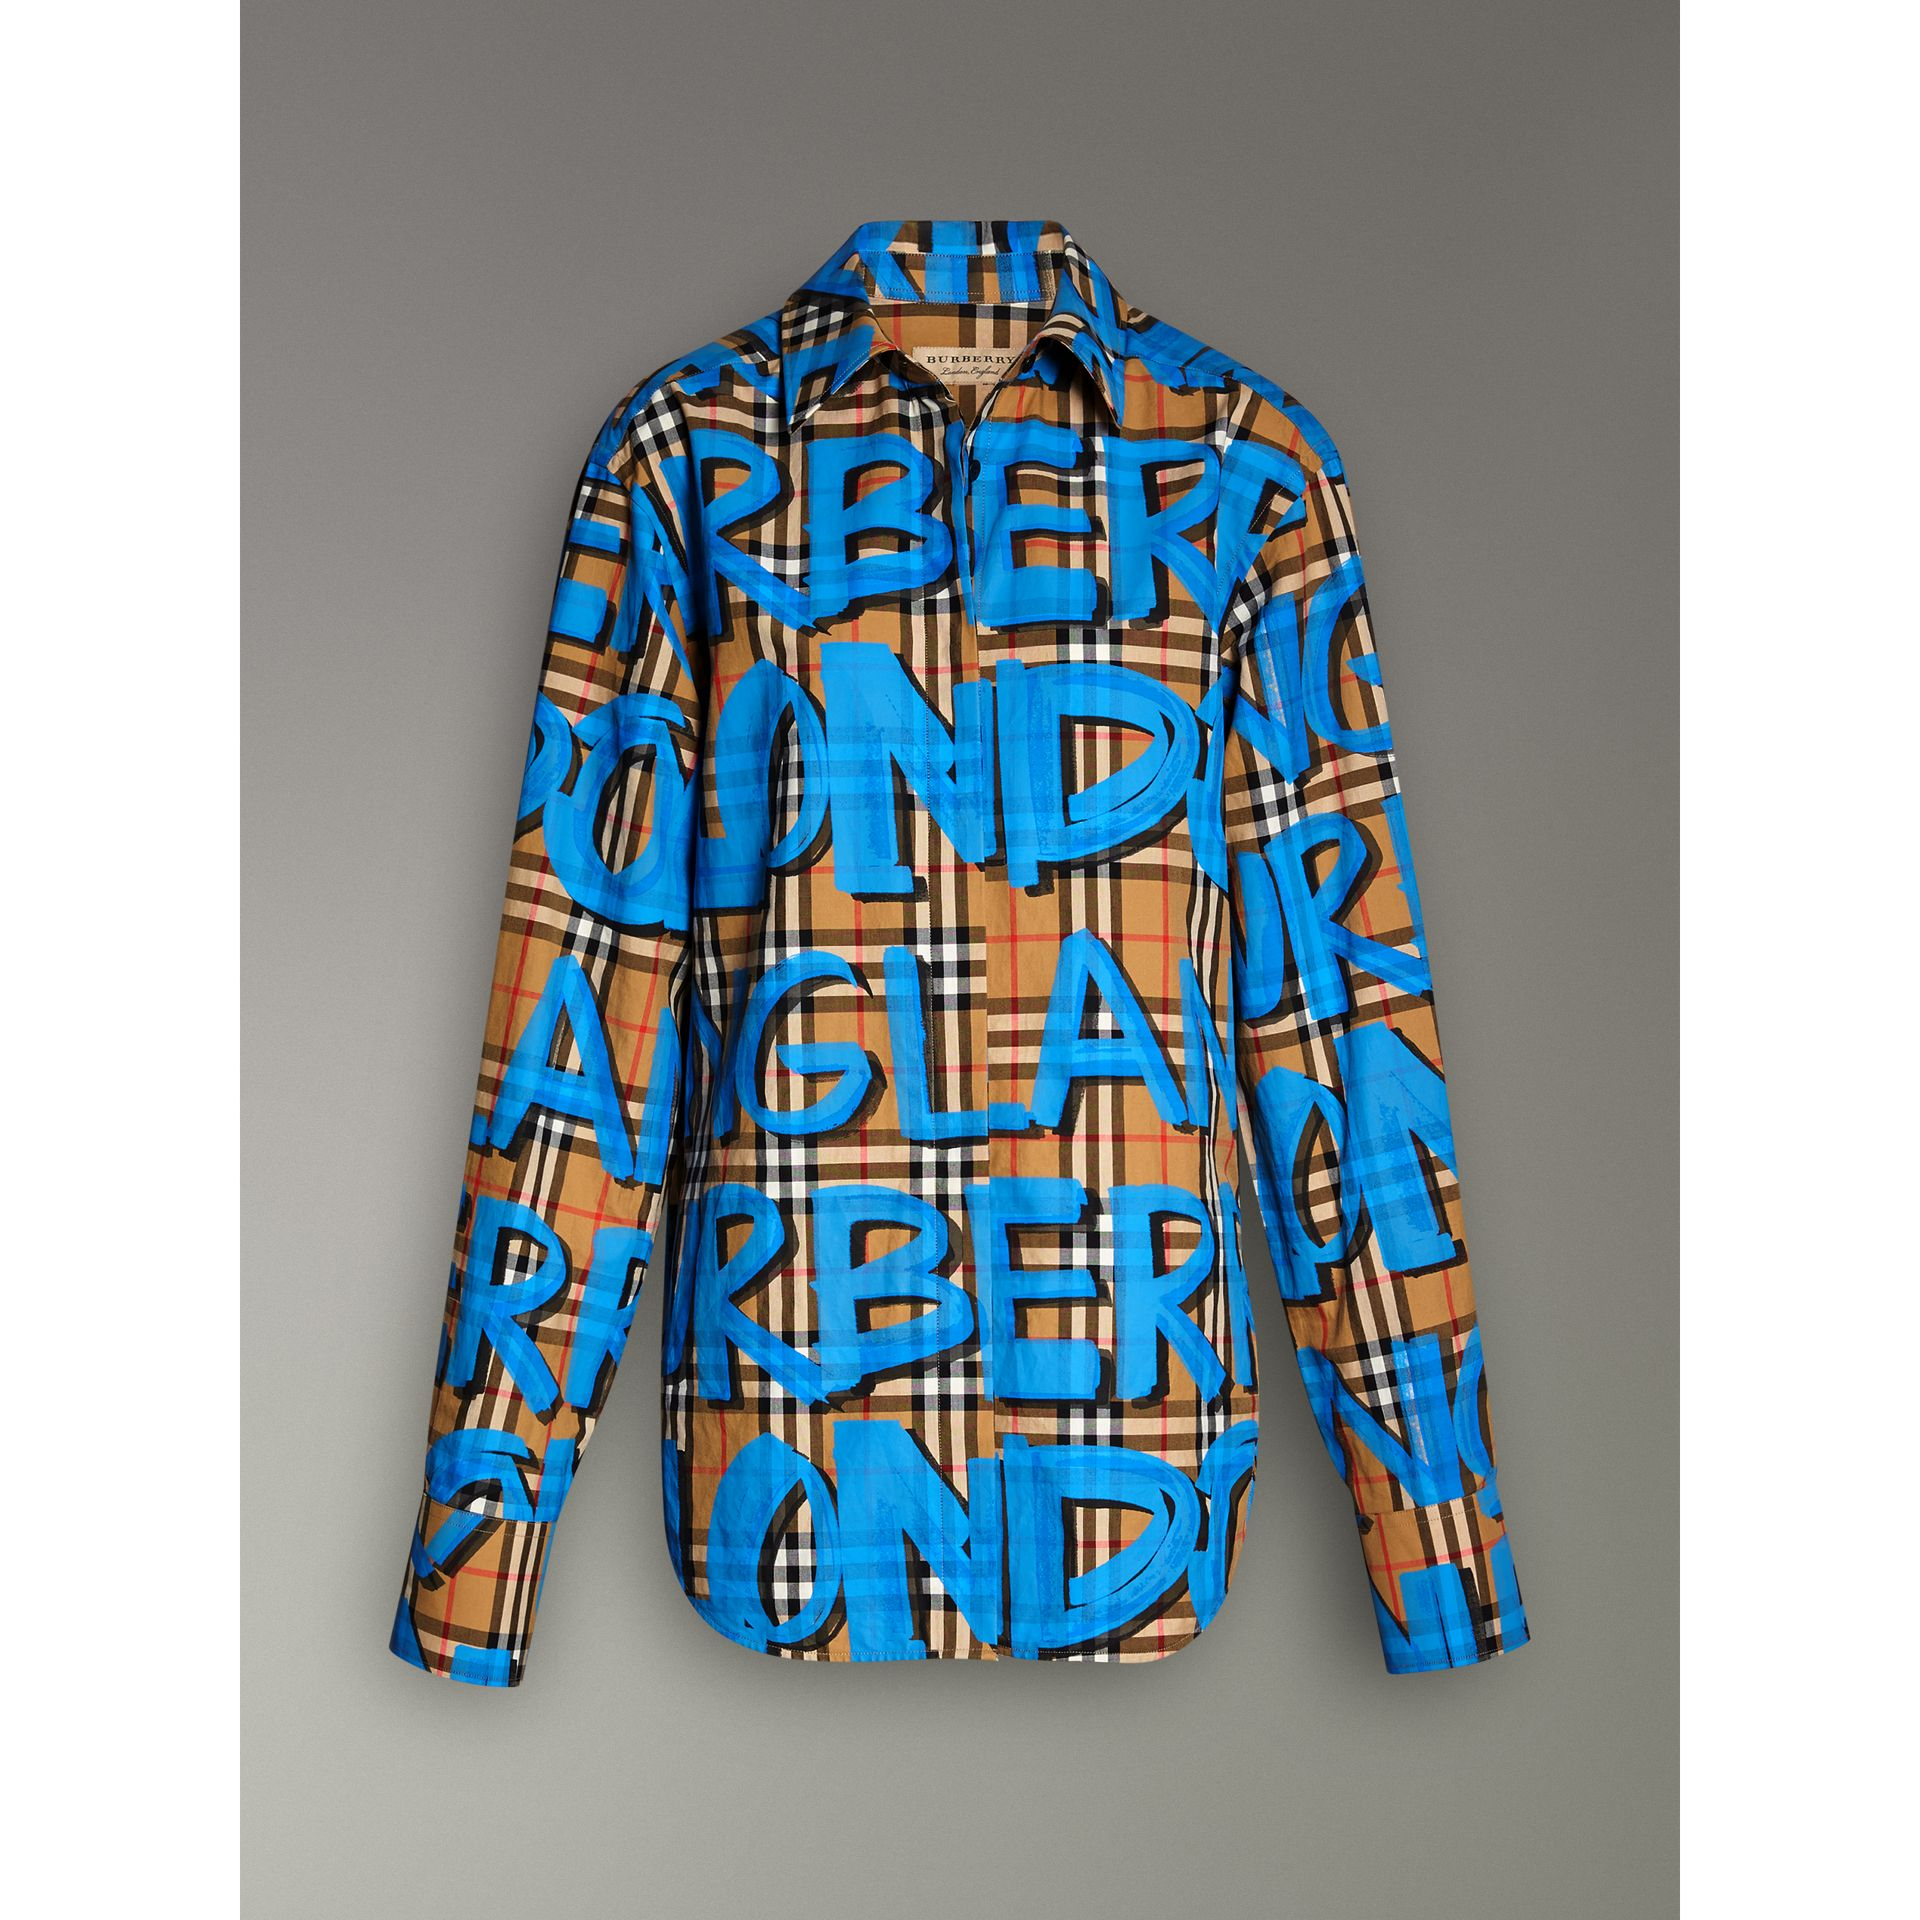 Graffiti Print Vintage Check Cotton Shirt in Bright Blue - Women | Burberry United Kingdom - gallery image 3